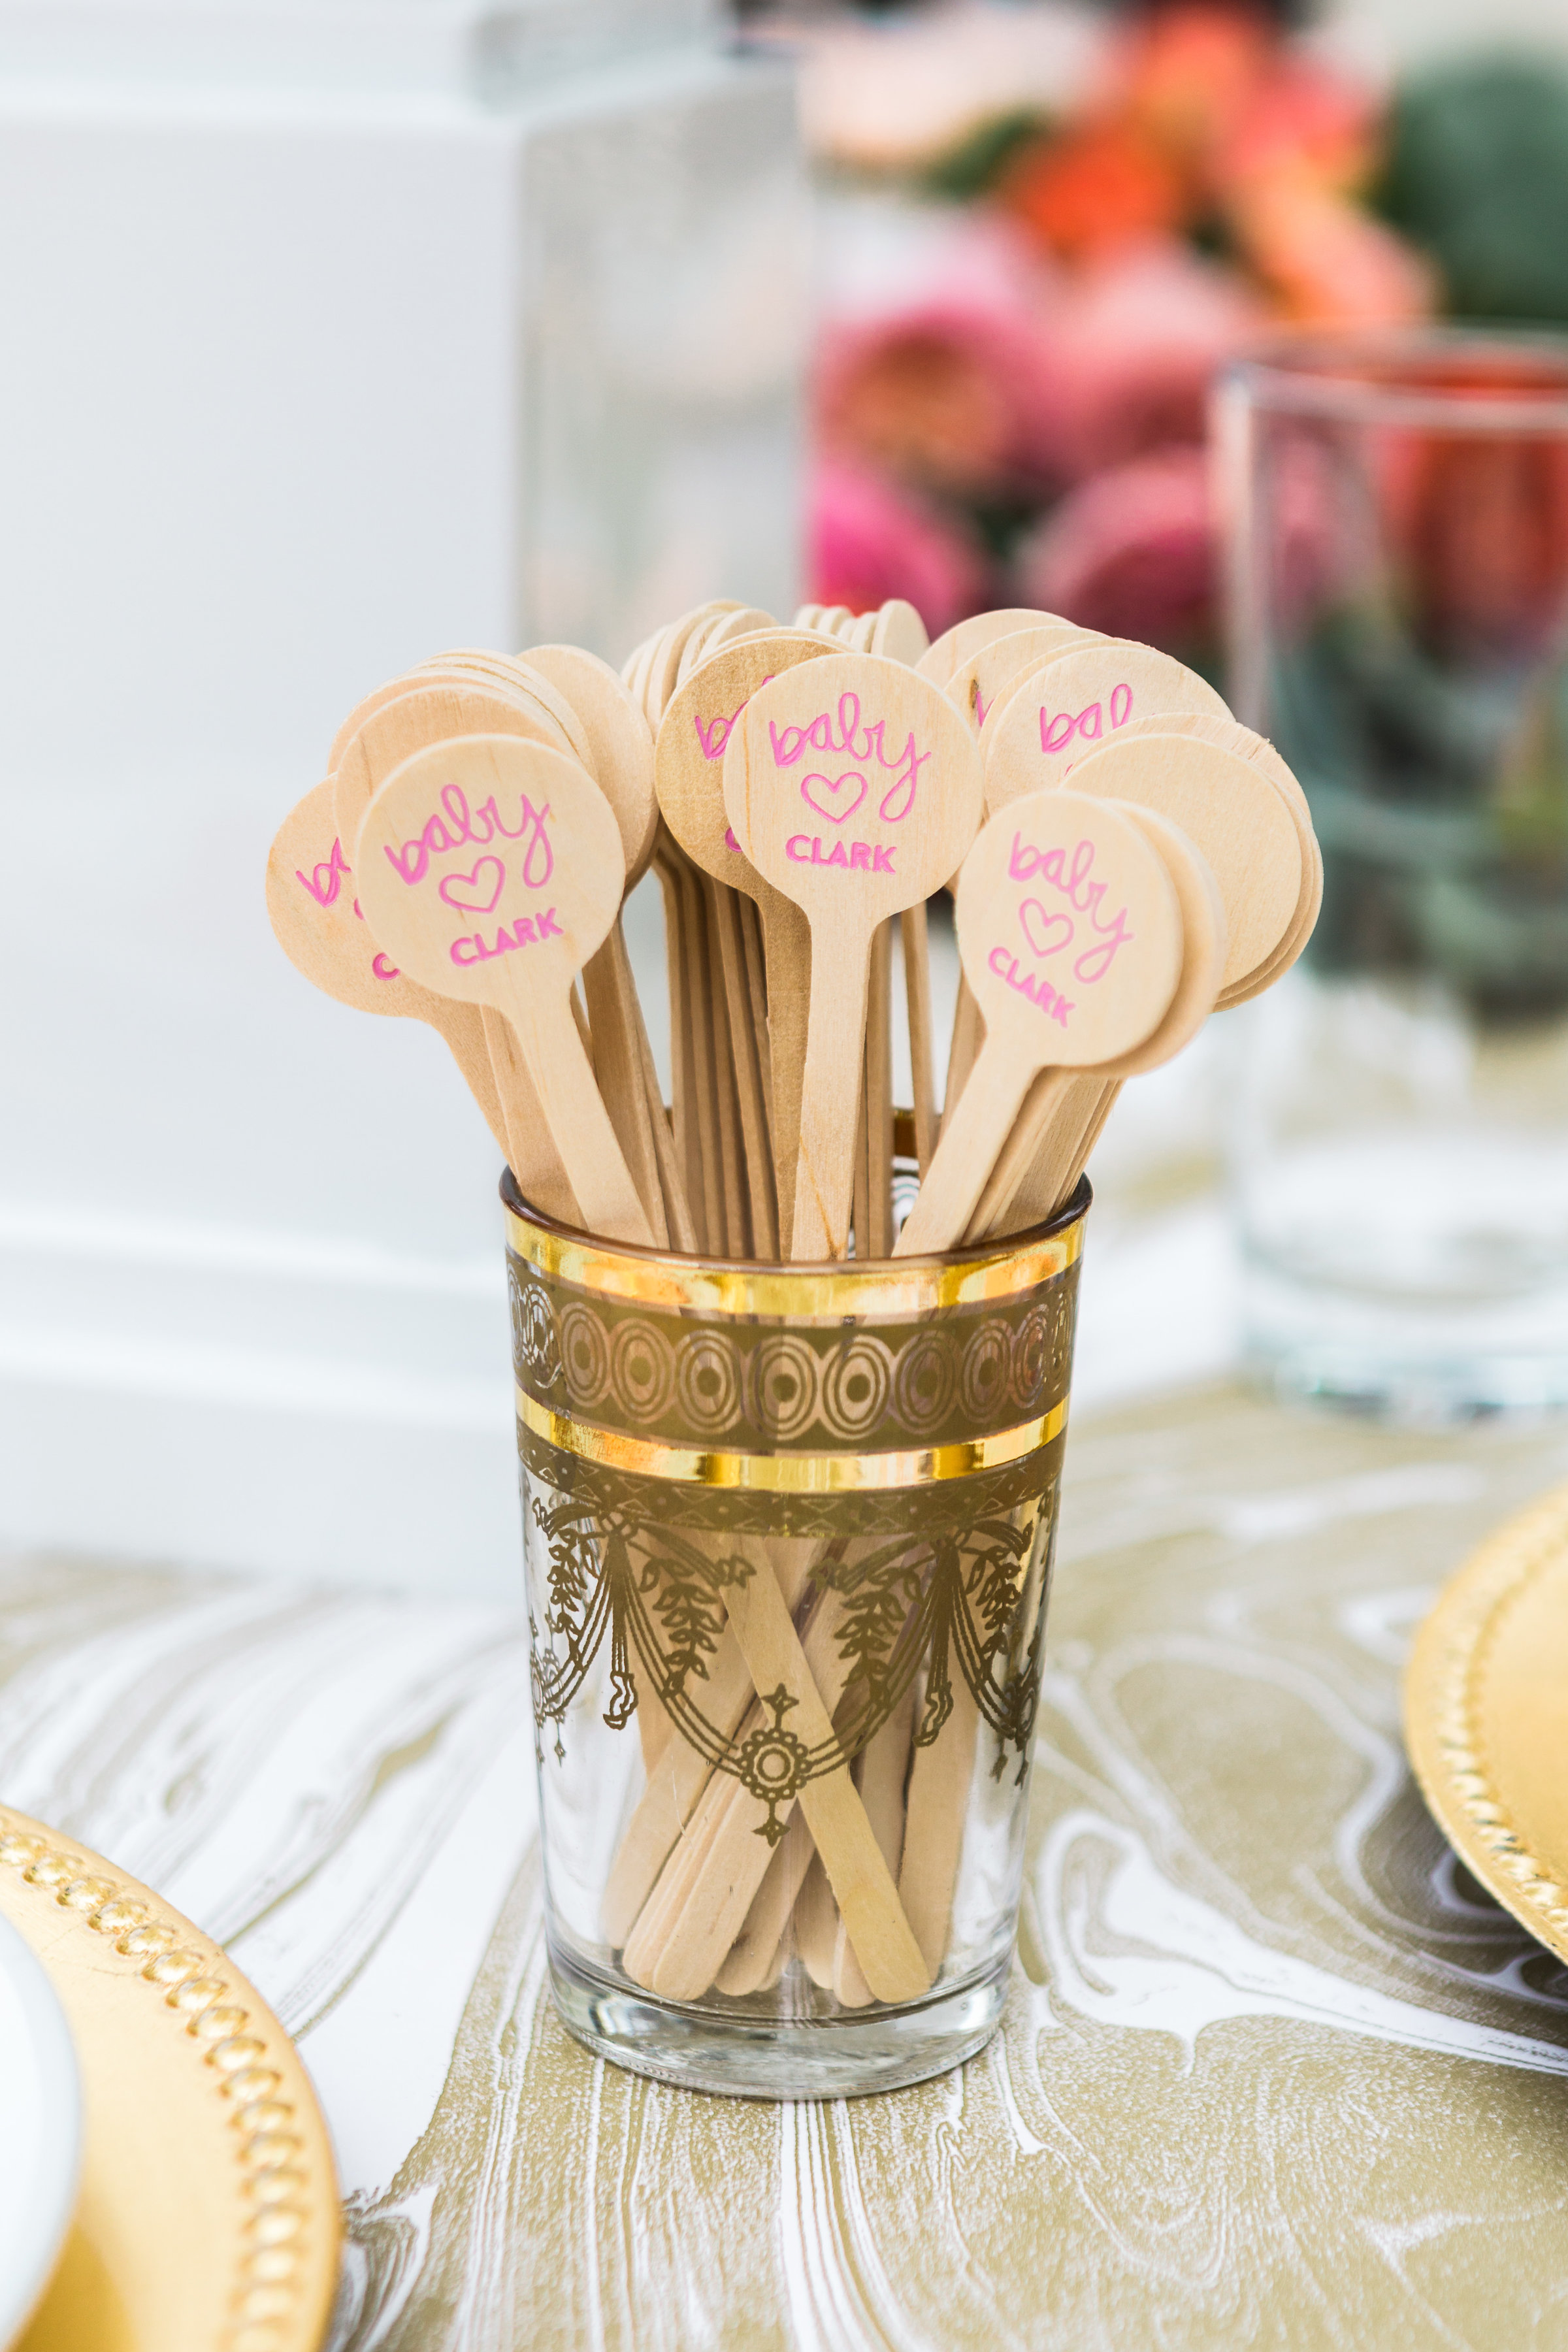 Baby Shower Essential: For Your Party Custom Stirrers